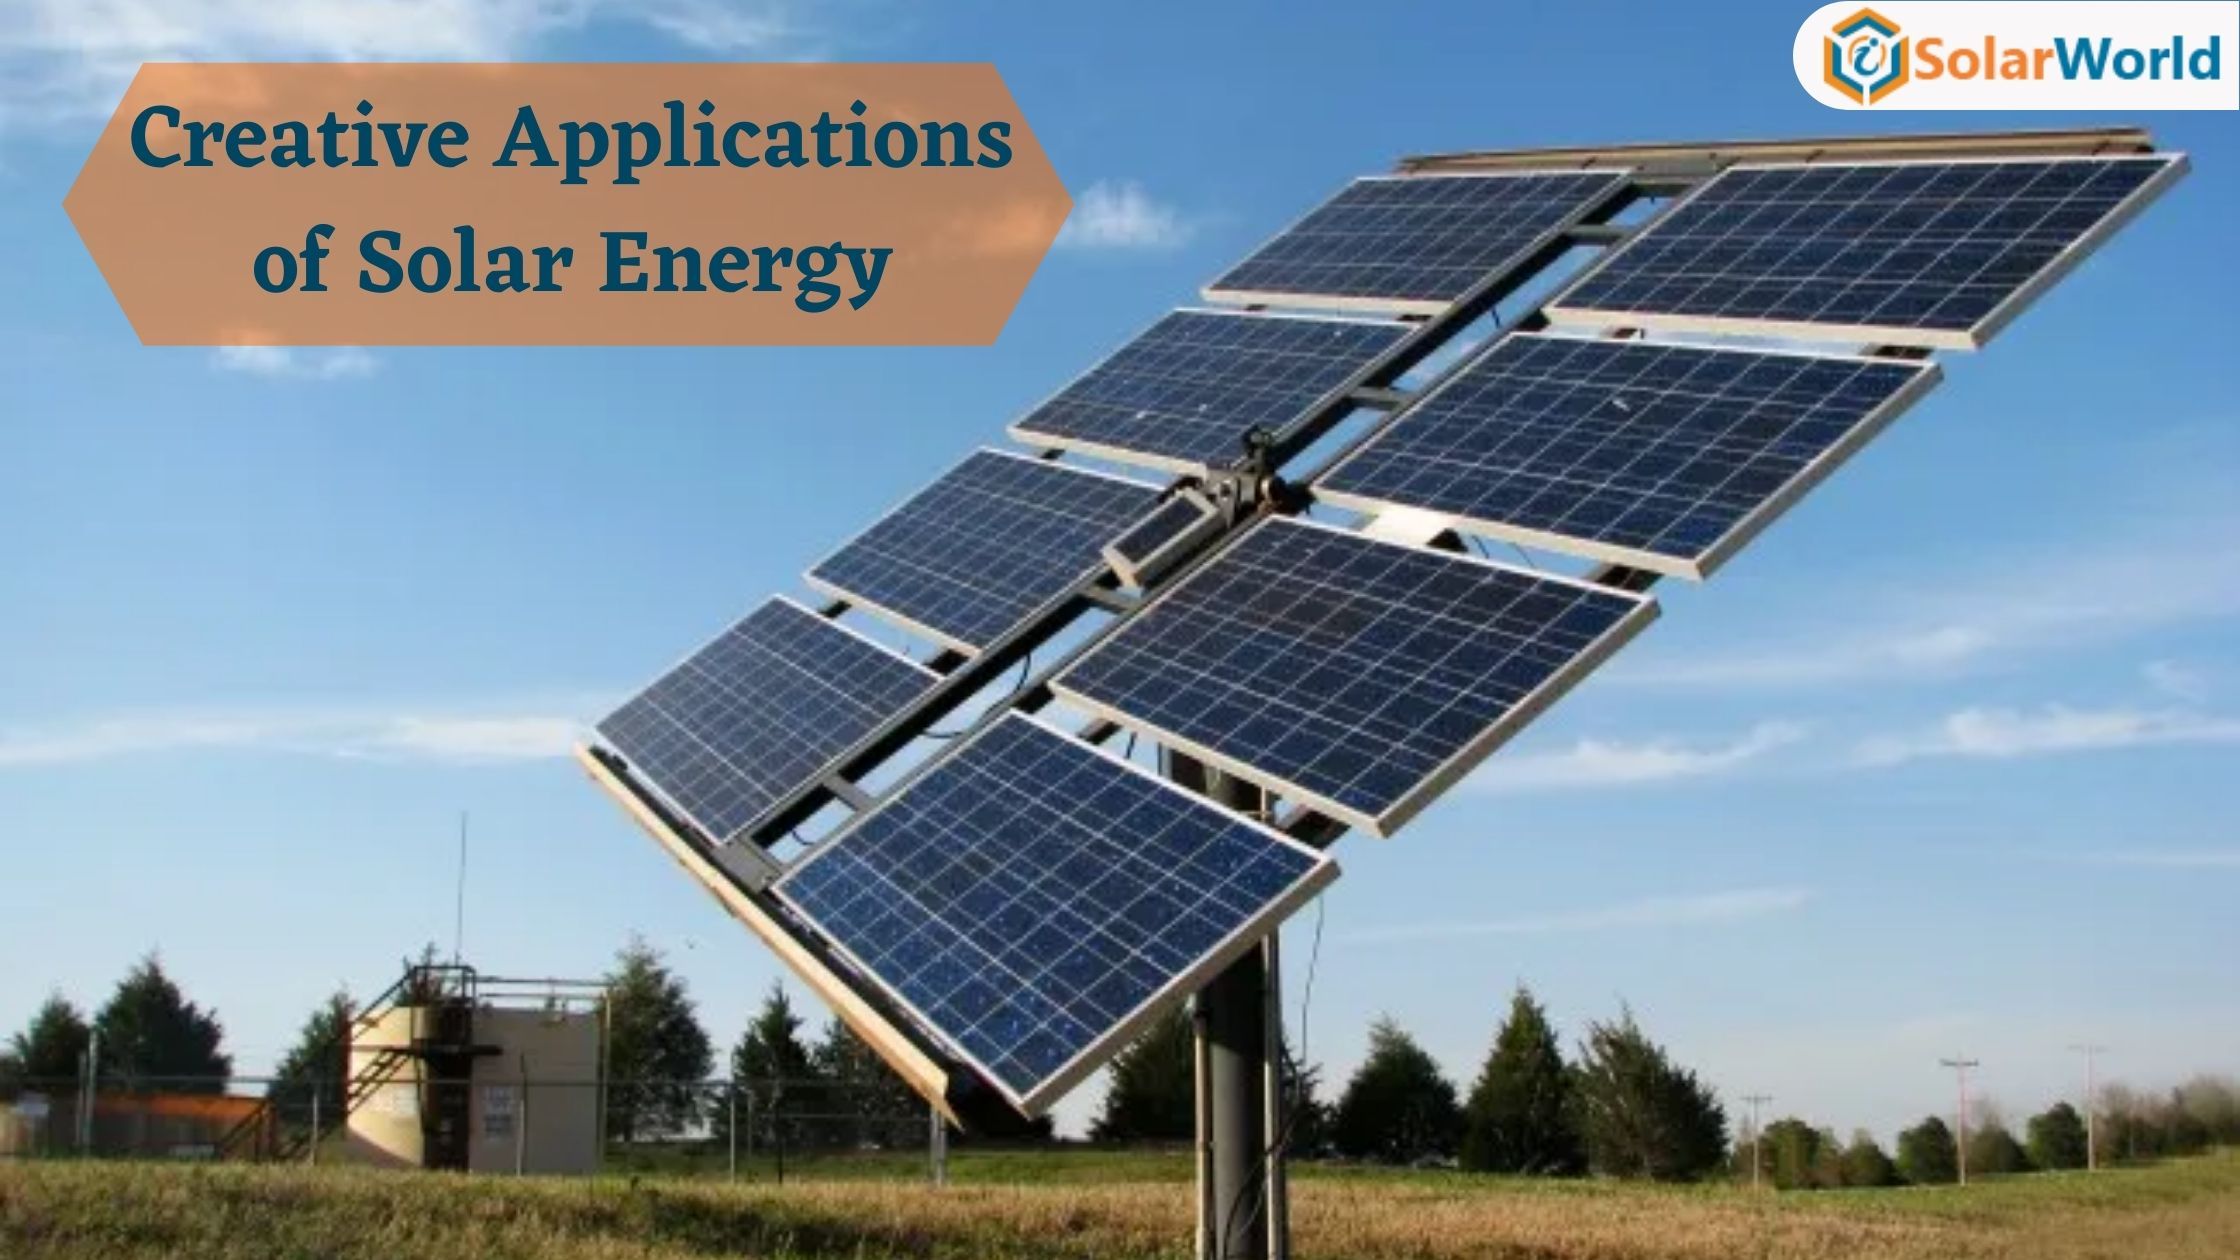 Innovation and evolution are making the world more energy-efficient and beautiful place. Let's see the Creative Applications of Solar Energy